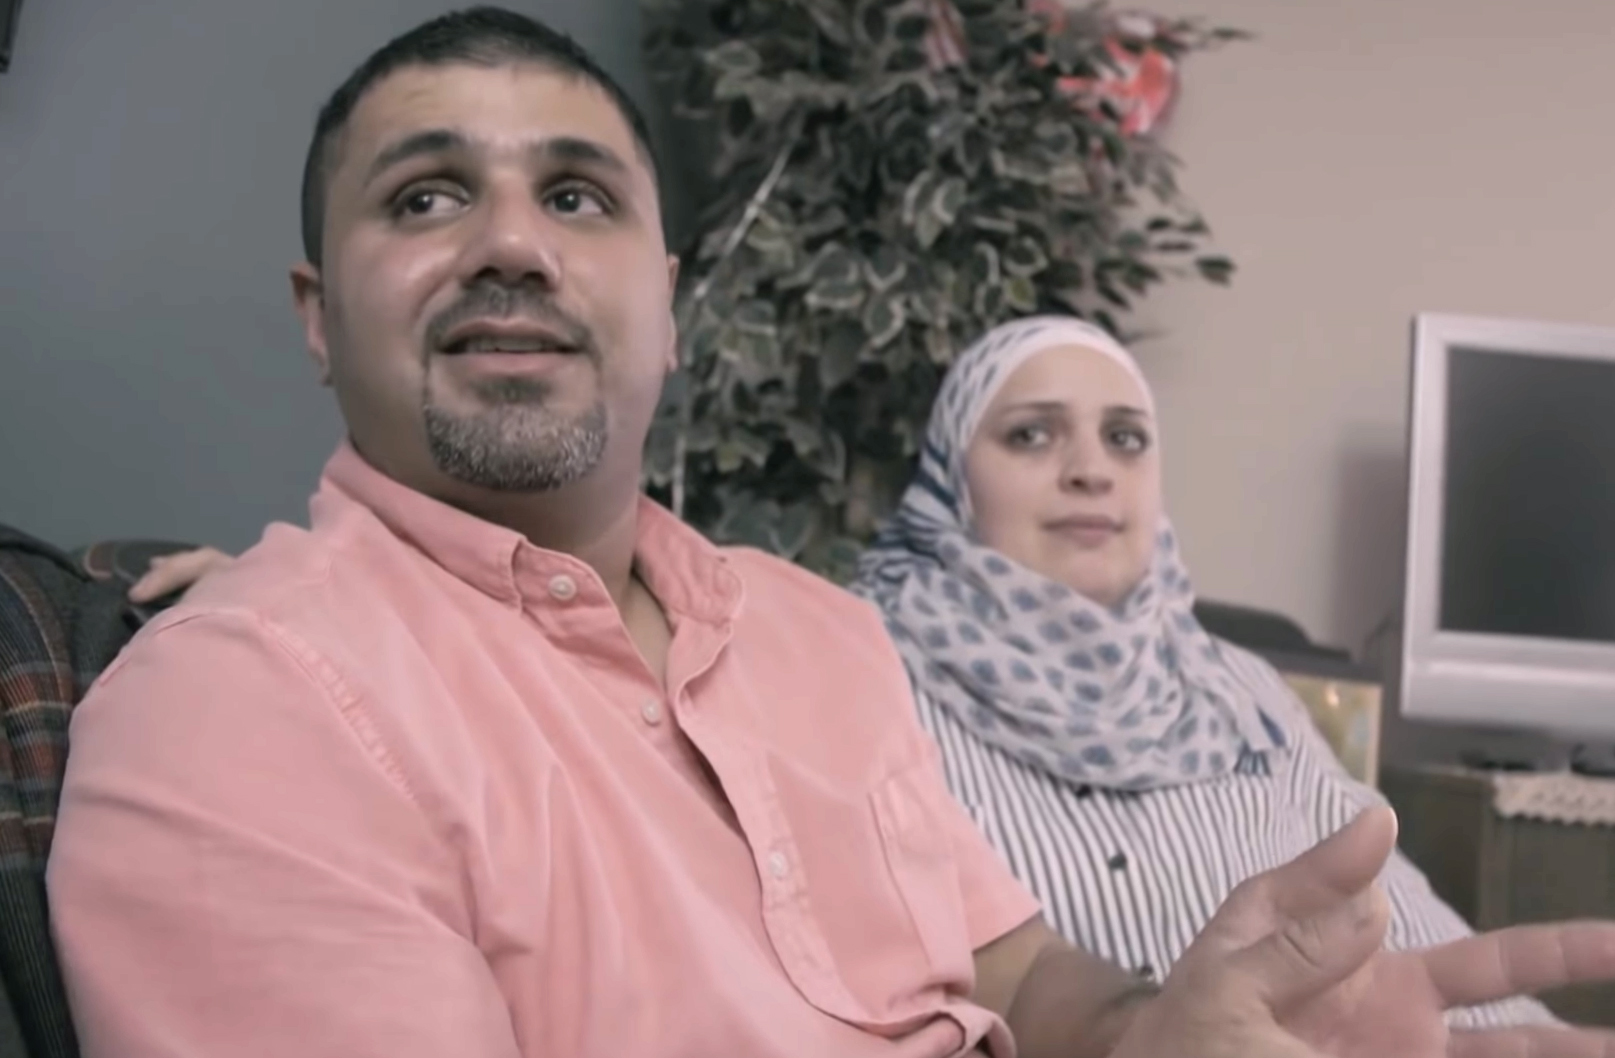 Two brothers fled Syria. Now Trump's travel ban separates them.